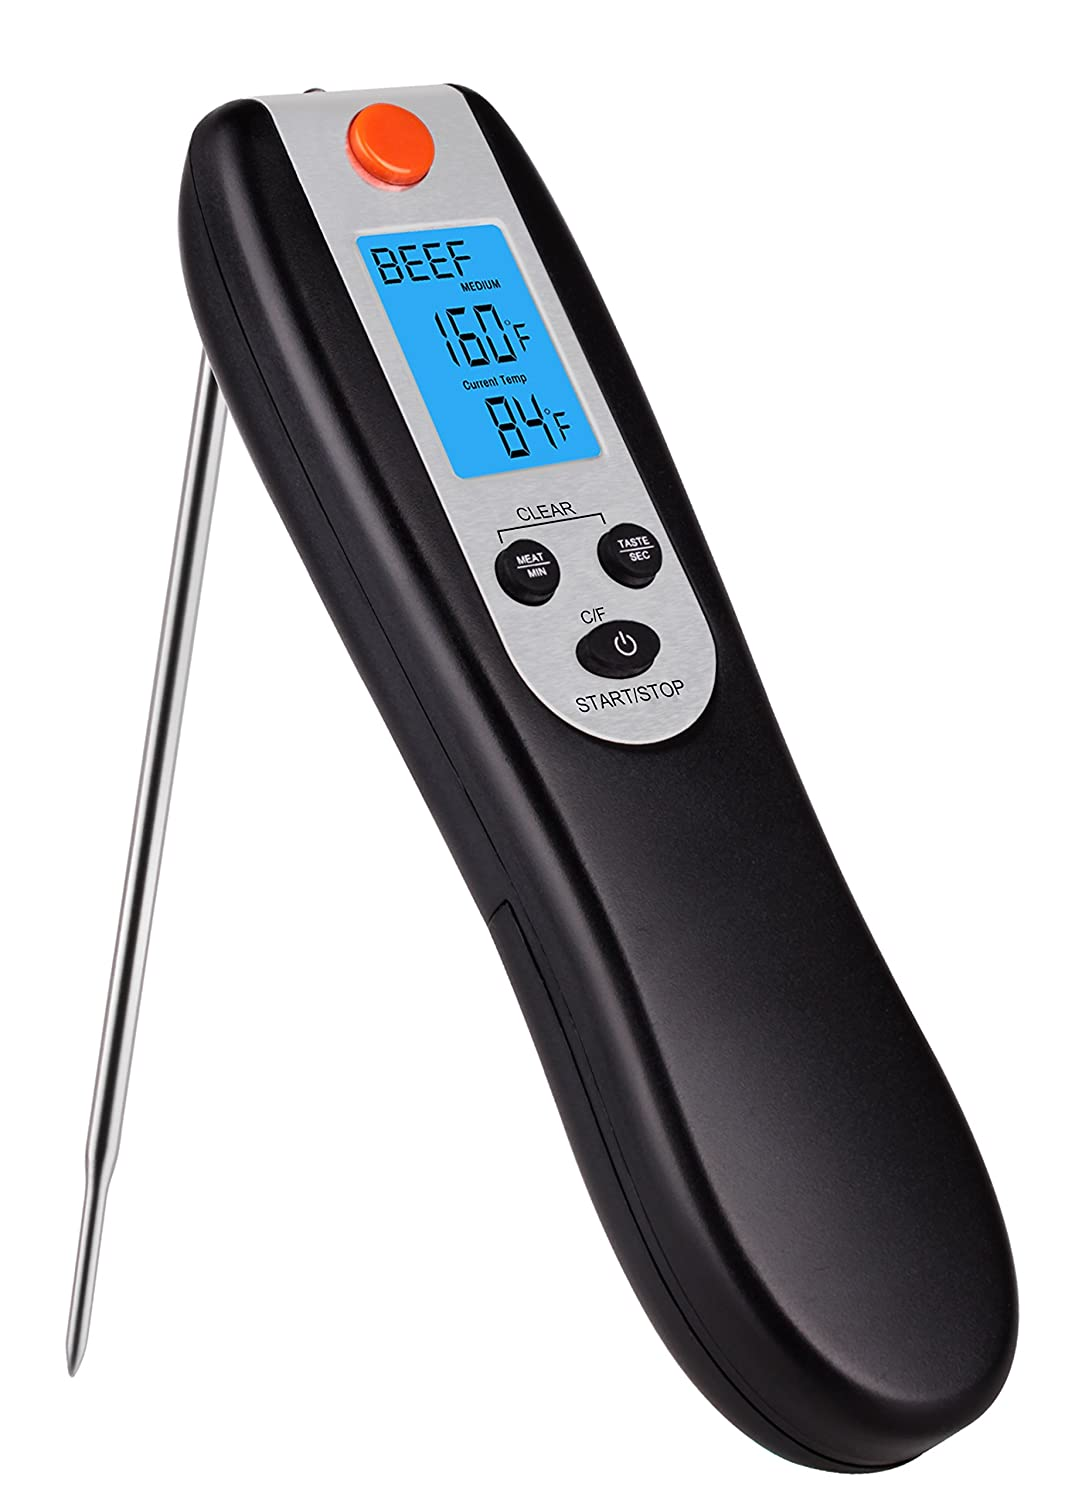 HEYFIT Kitchen Instant Read Digital Grill Cooking Food Thermometer, 5.4 Inch, Black&Silver